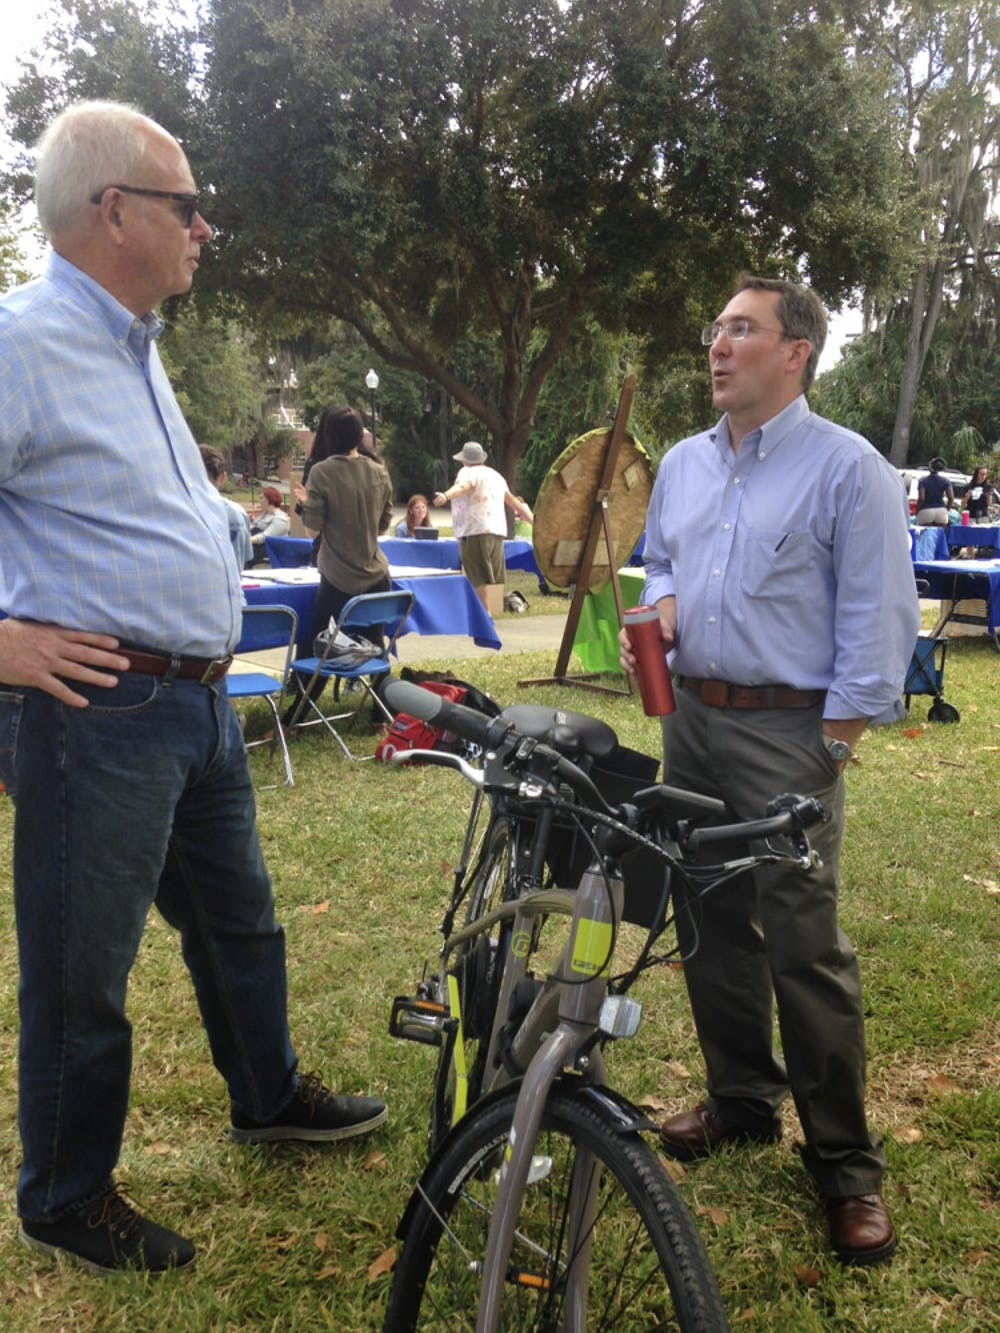 """<p>Former UF President Bernie Machen (left) converses with Matthew Williams, UF Office of Sustainability &amp; Energy Integration director, about his electric bike at the Sustainable Transportation Fair on the Reitz Union Lawn on Oct. 21, 2015. Williams said e-biking is """"the fastest, easiest and most pleasant way to get around campus.""""</p>"""